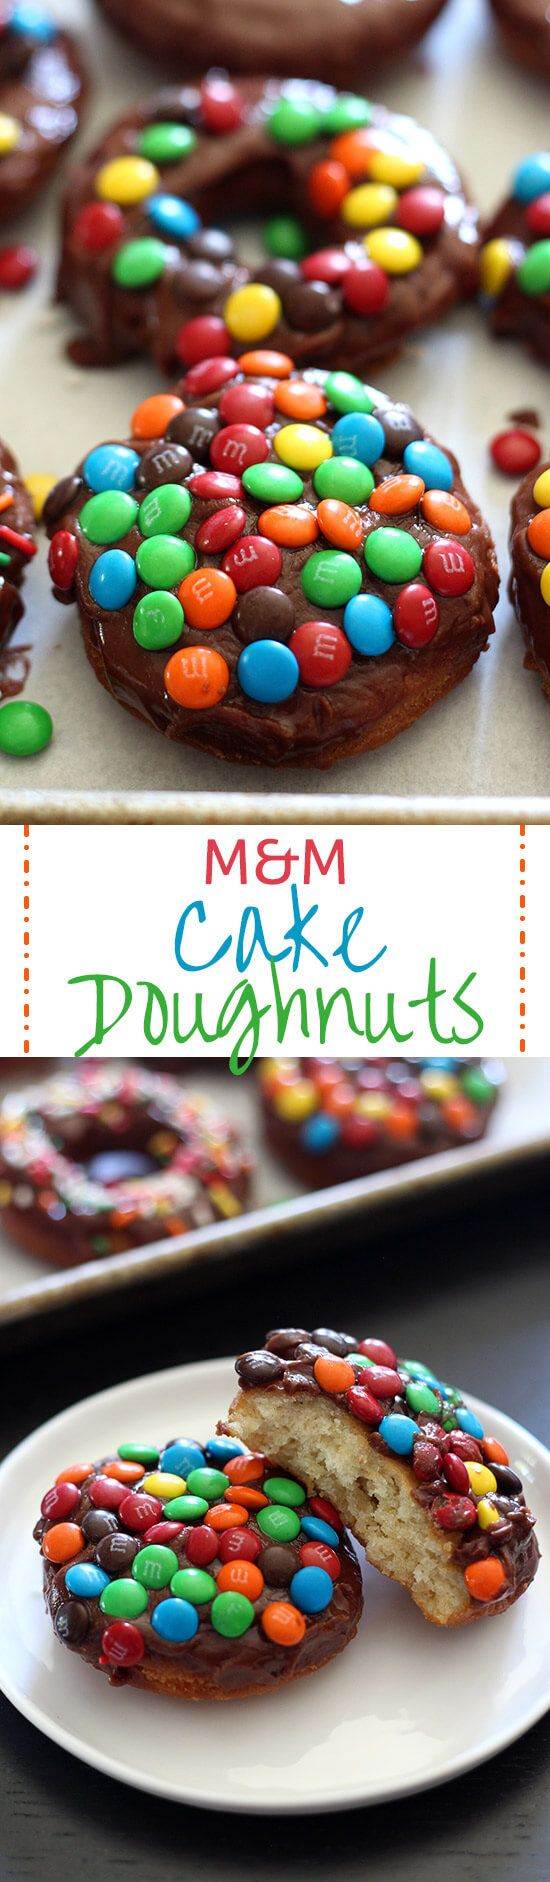 M&M Cake Doughnuts are fried perfection, topped with a thick chocolate glaze and crunchy m&m candies and are way quicker to make than yeast doughnuts!